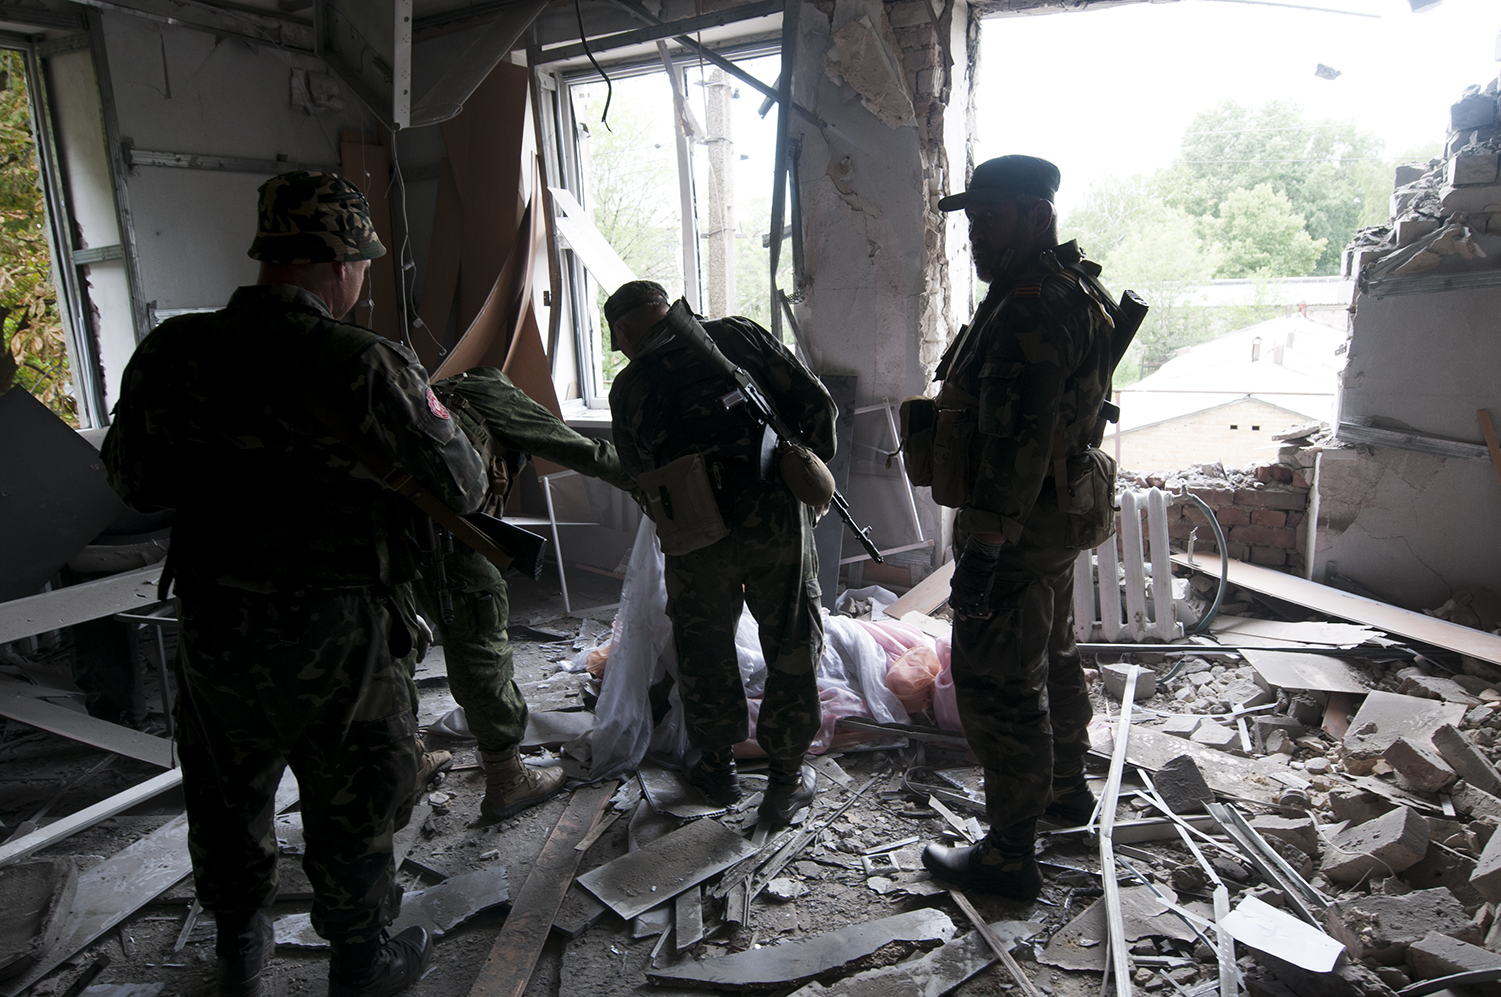 Separatist squad looking over the life less body of a security guard they came to retrive